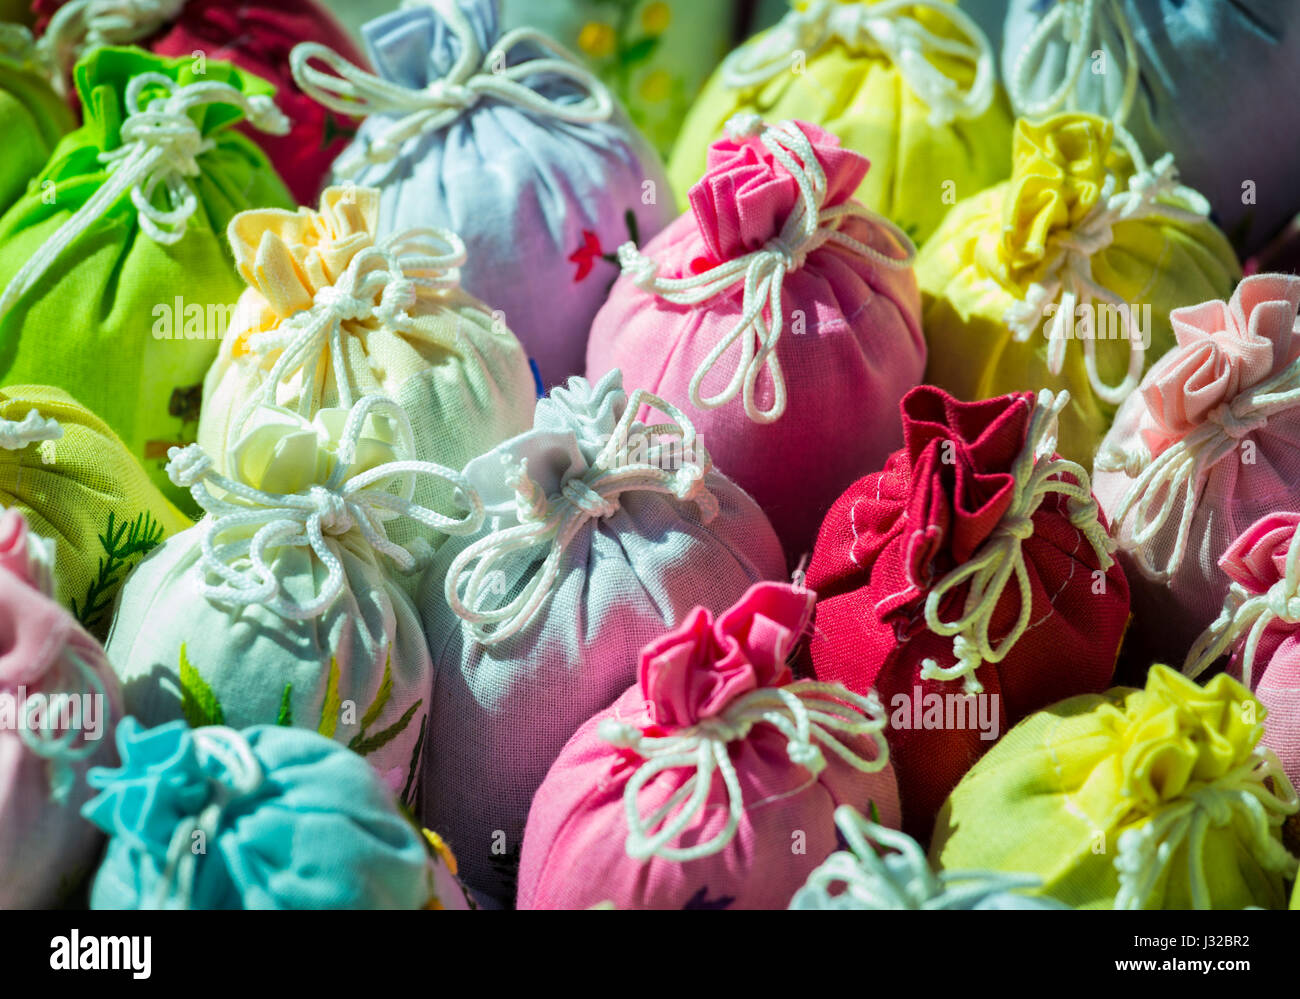 Colorful lavender bags in embroidered gift cloth sacks tied with string - Stock Image